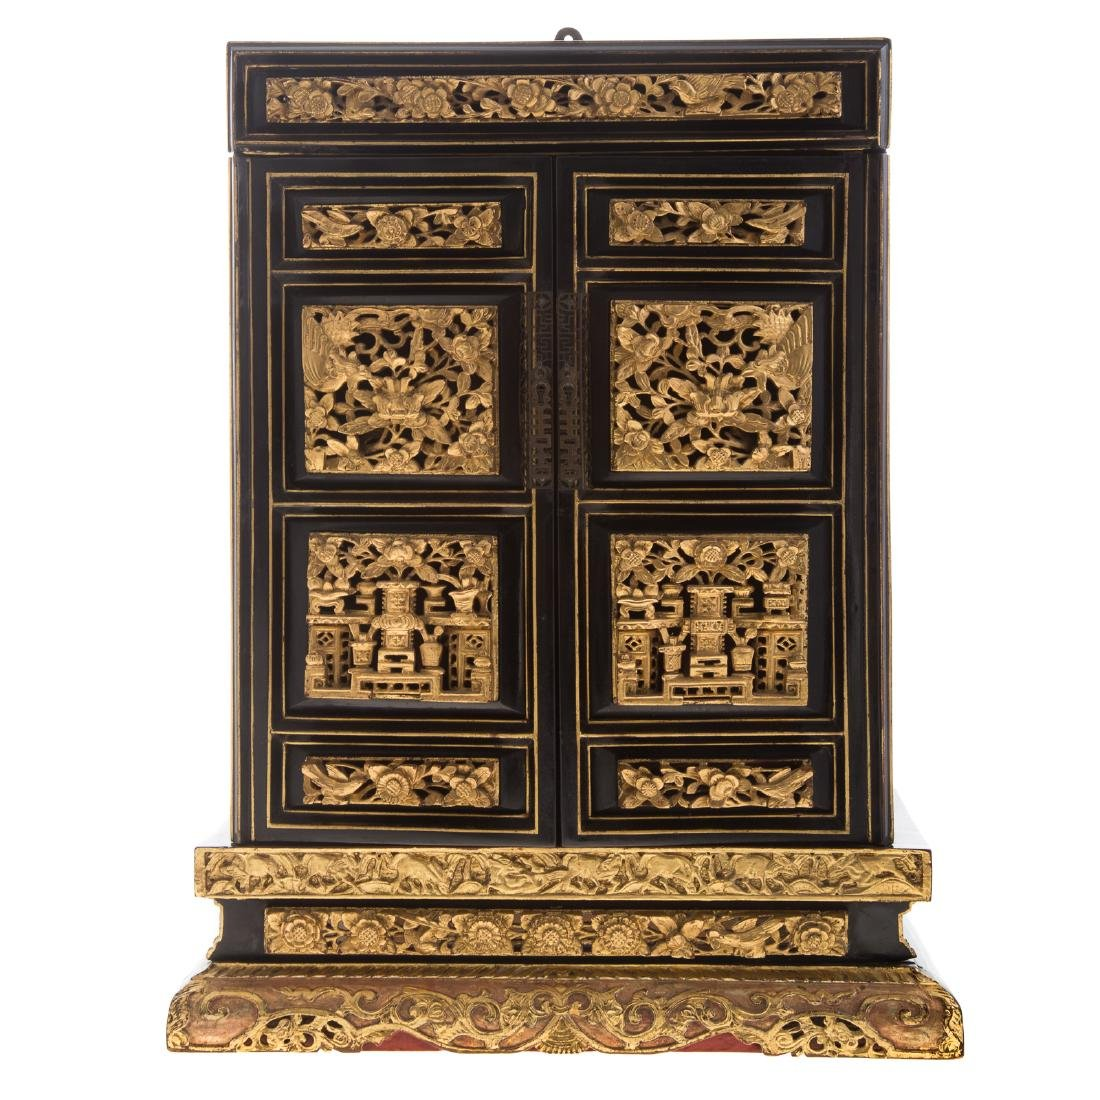 Chinese lacquer and gilt wood shrine